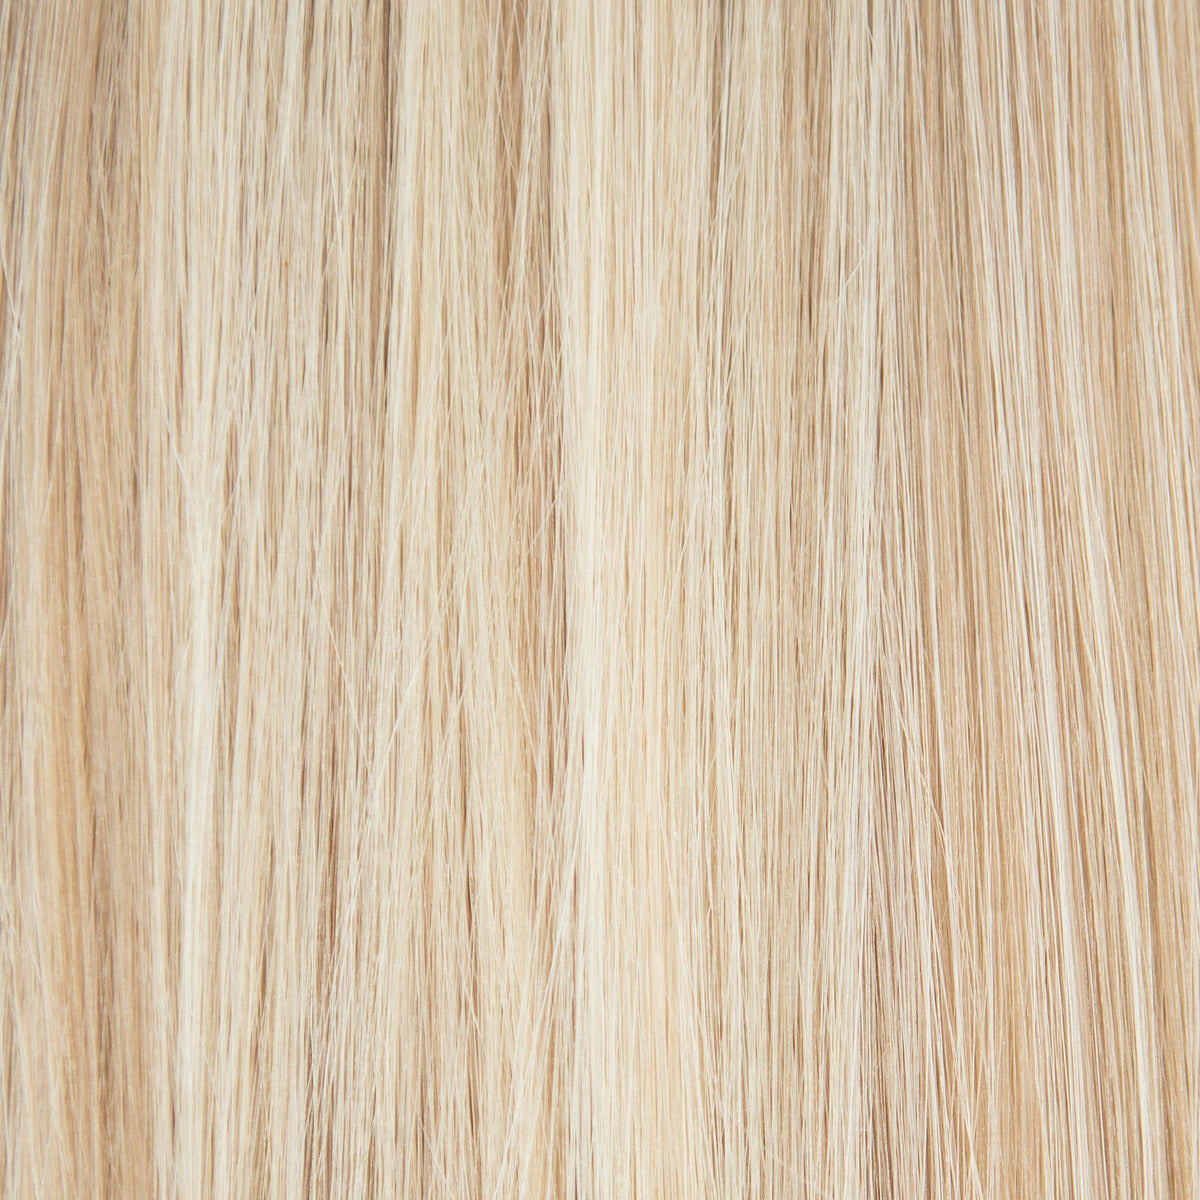 Waved By Laced Hair - Waved By Laced Hair Machine Sewn Weft Extensions Dimensional #18/22